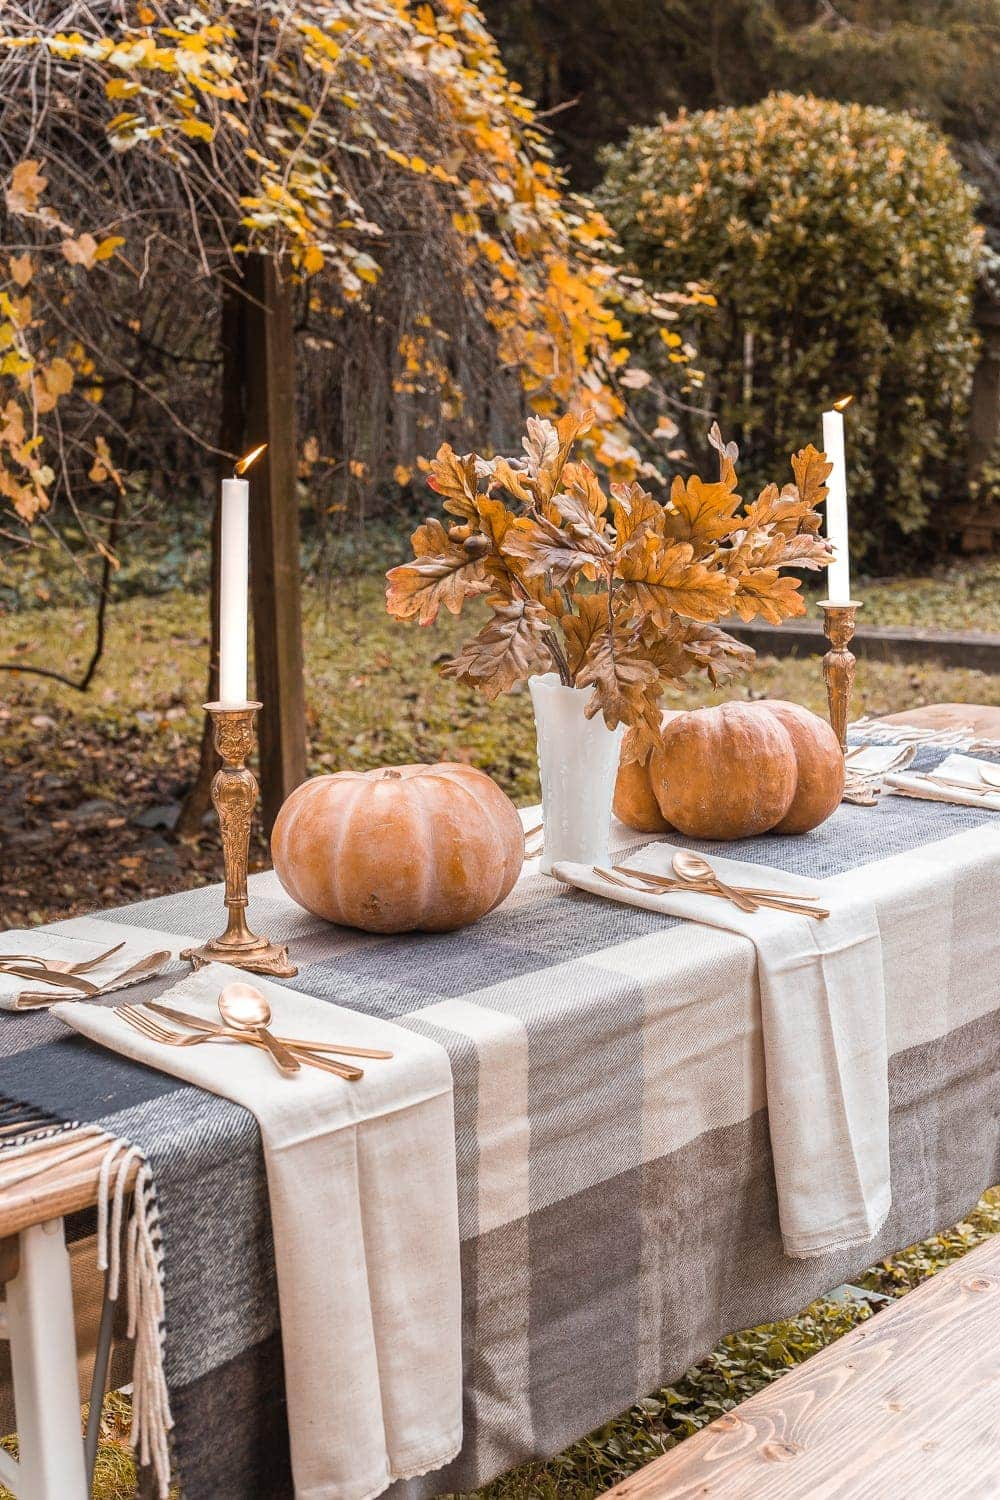 Thanksgiving alfresco beer garden table outdoors